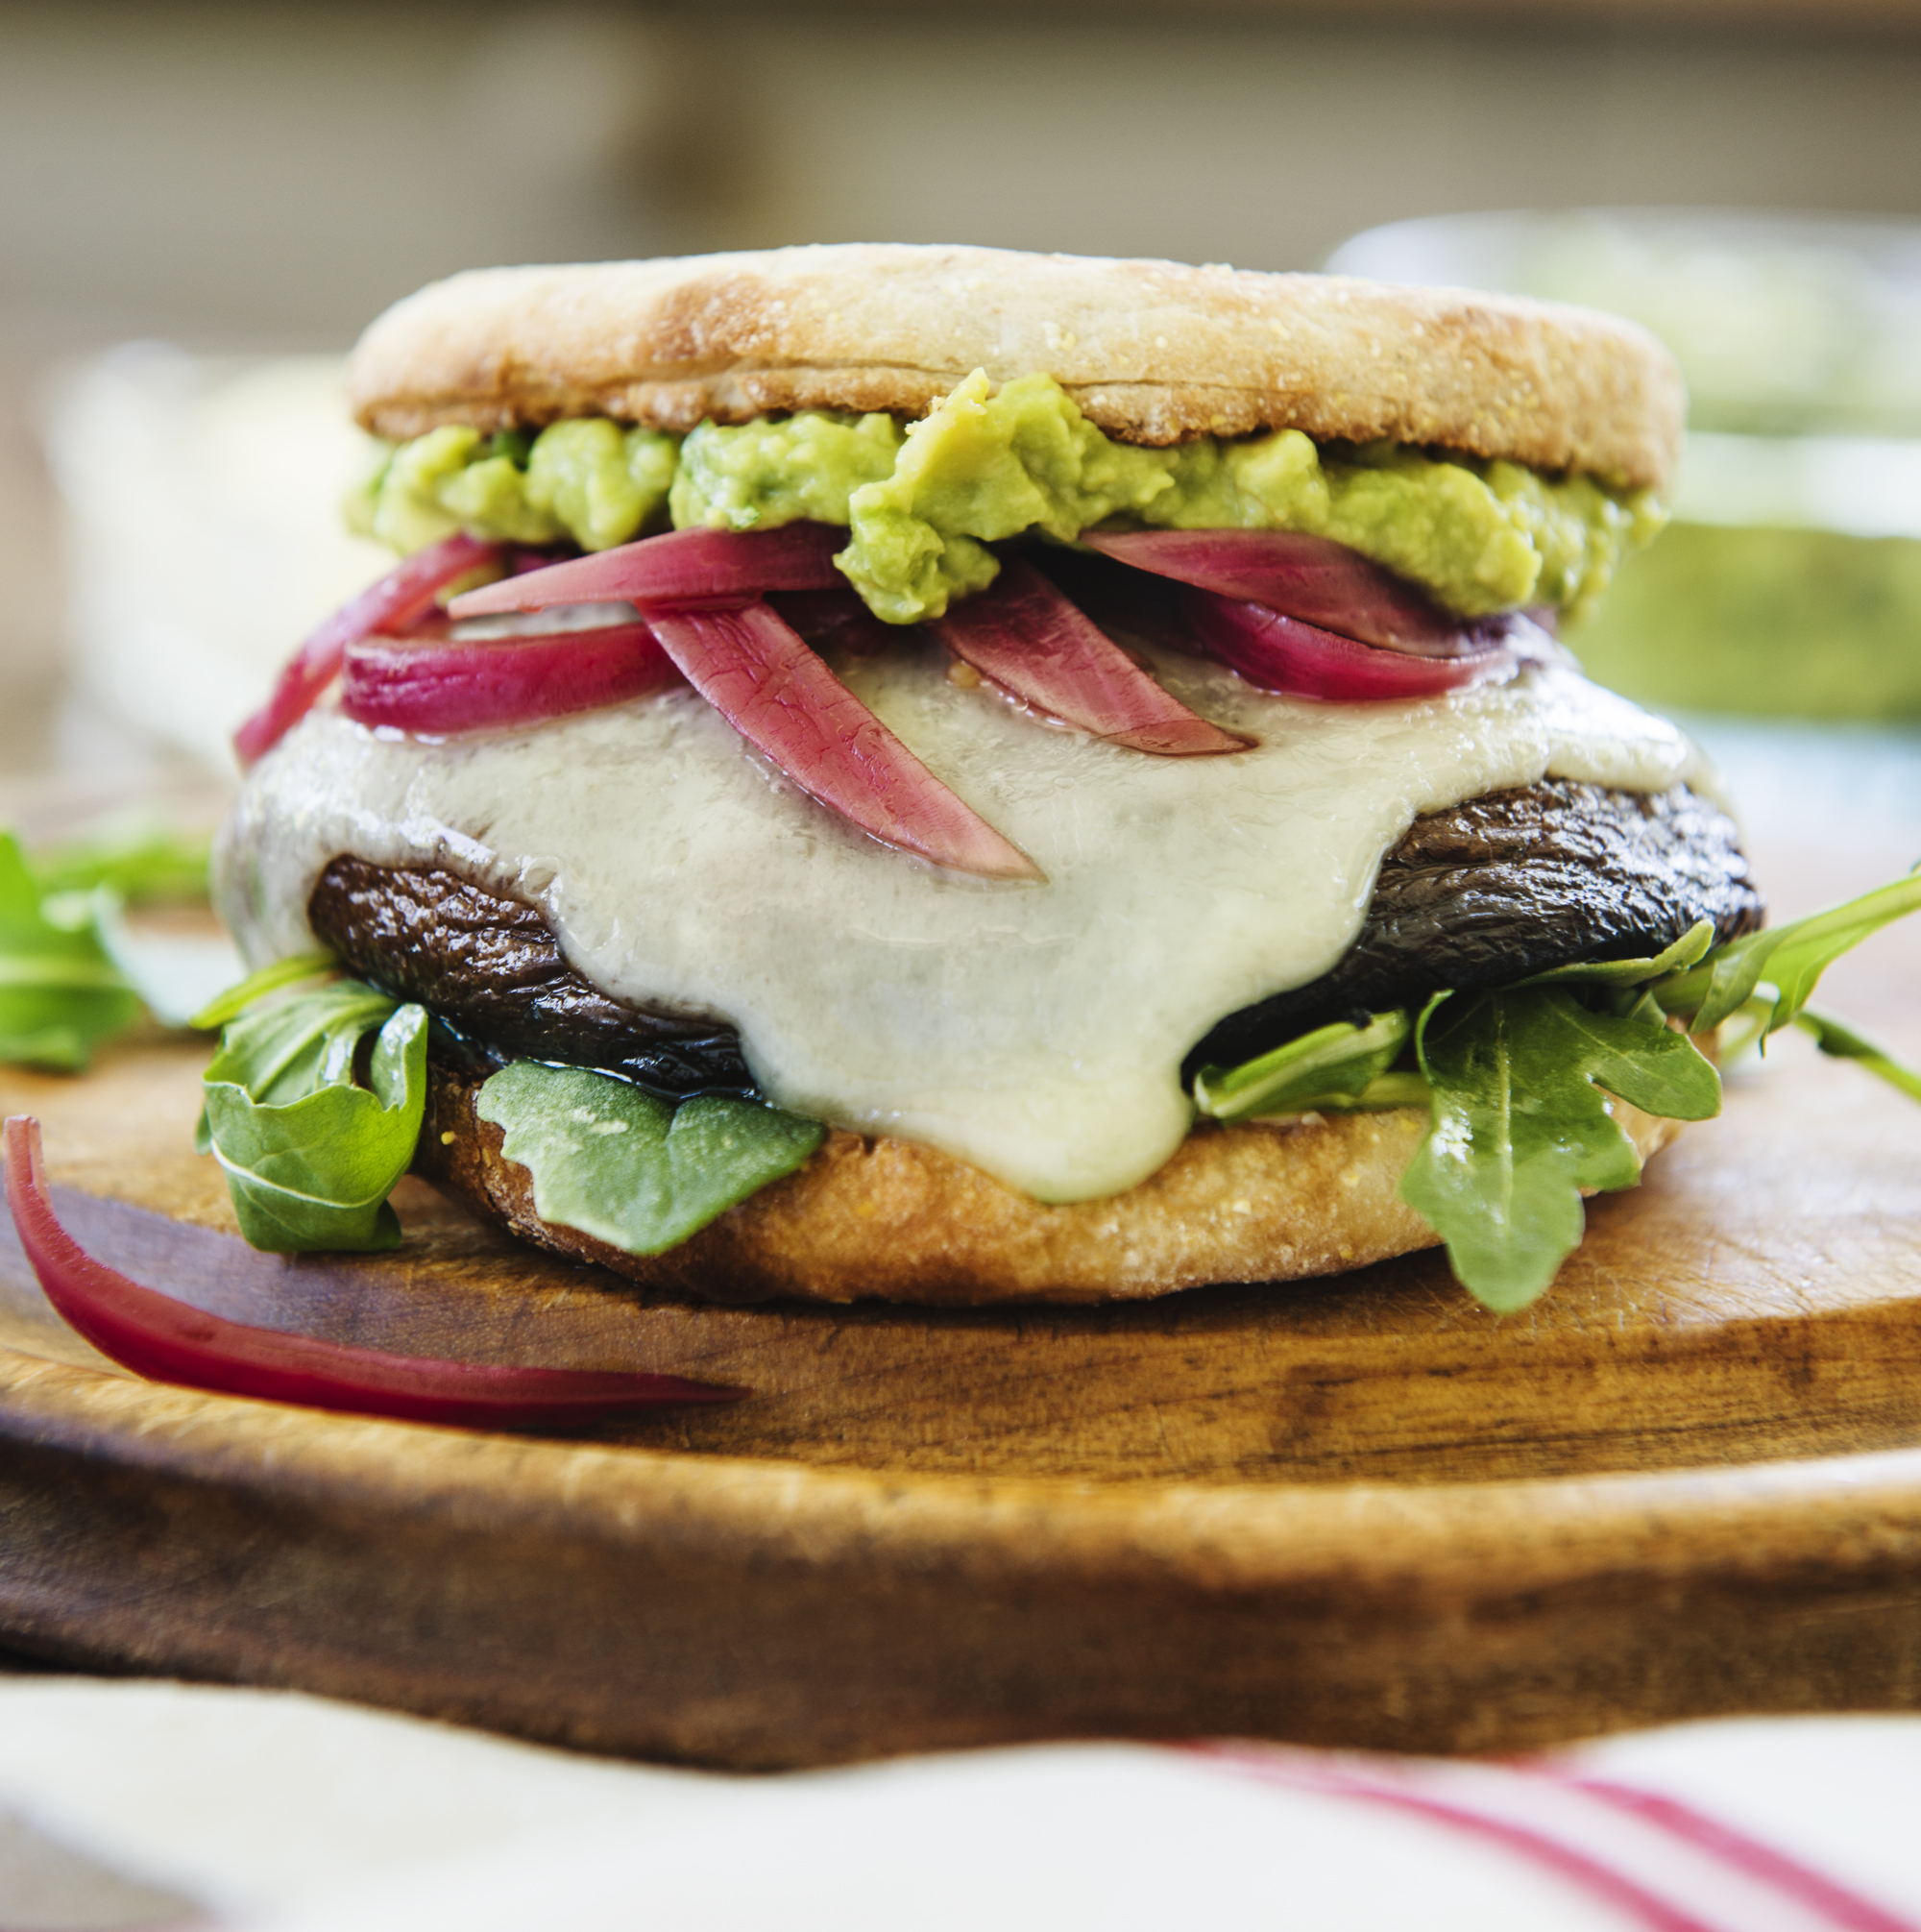 First we must gather the  Burger Build Components,  some of which we can make ourselves. The recipes make 12 servings, but you can adjust the numbers for your own party needs.  · Portobello Mushrooms Caps-3-4 inch diameter by 1-2 inch high  · English Muffins  · Plu gras butter – softened at room temperature  · Baby Arugula Lettuce  · Havarti Cheese Slices  · Pickled Red Onions  · Avocado Herb Mash  You will want to make the Pickled Red Onions first, to give them time to rest and cool before they are called for their close-ups.